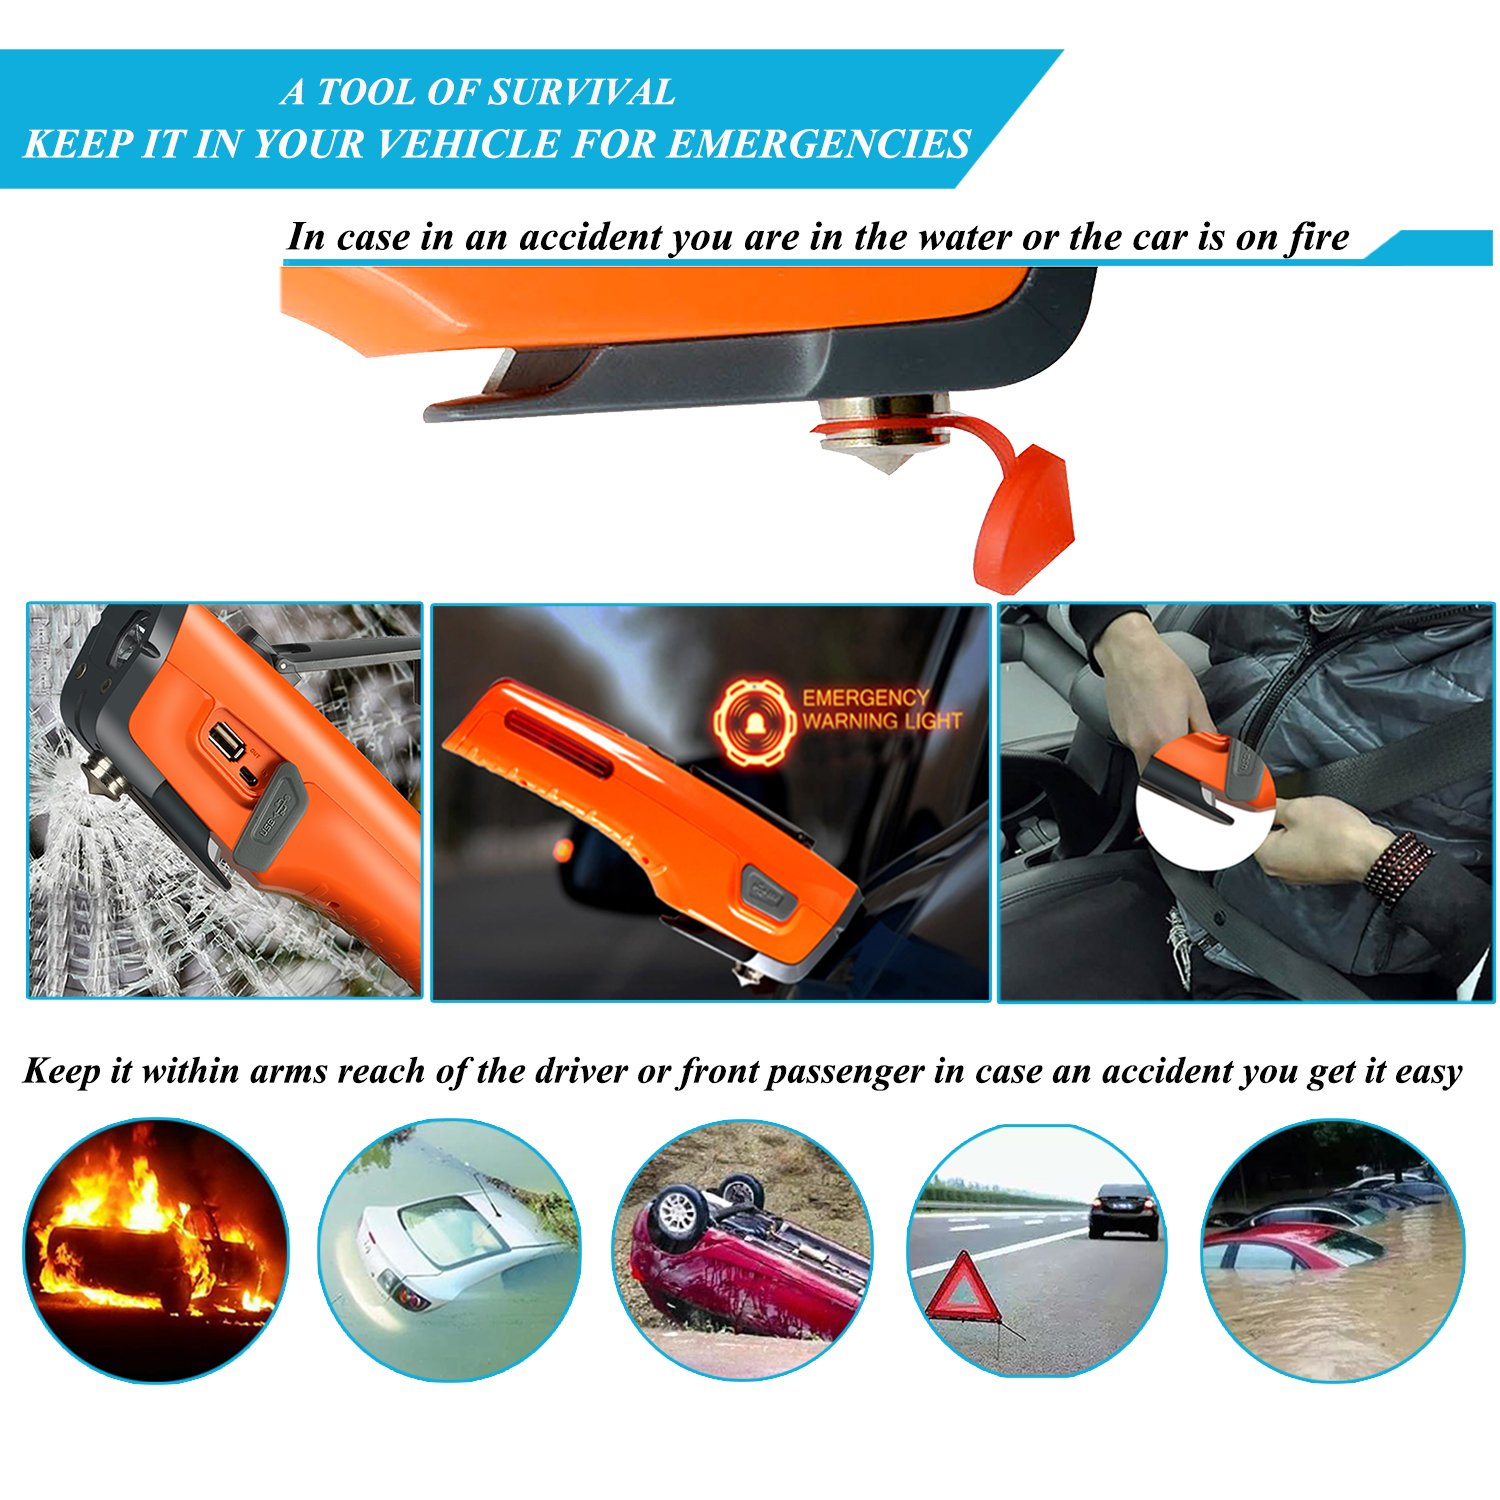 Ltd LX-1084-F LUXON Emergency Tool 7-in-1 Car Safety Tool Includes Window Hammer Seat Belt Cutter LED Flashlight Rescue Tool Contains USB Charger SOS Light /& Hand Cranking Charge for Vehicle Escape//Field Survival ZH Electronic Co